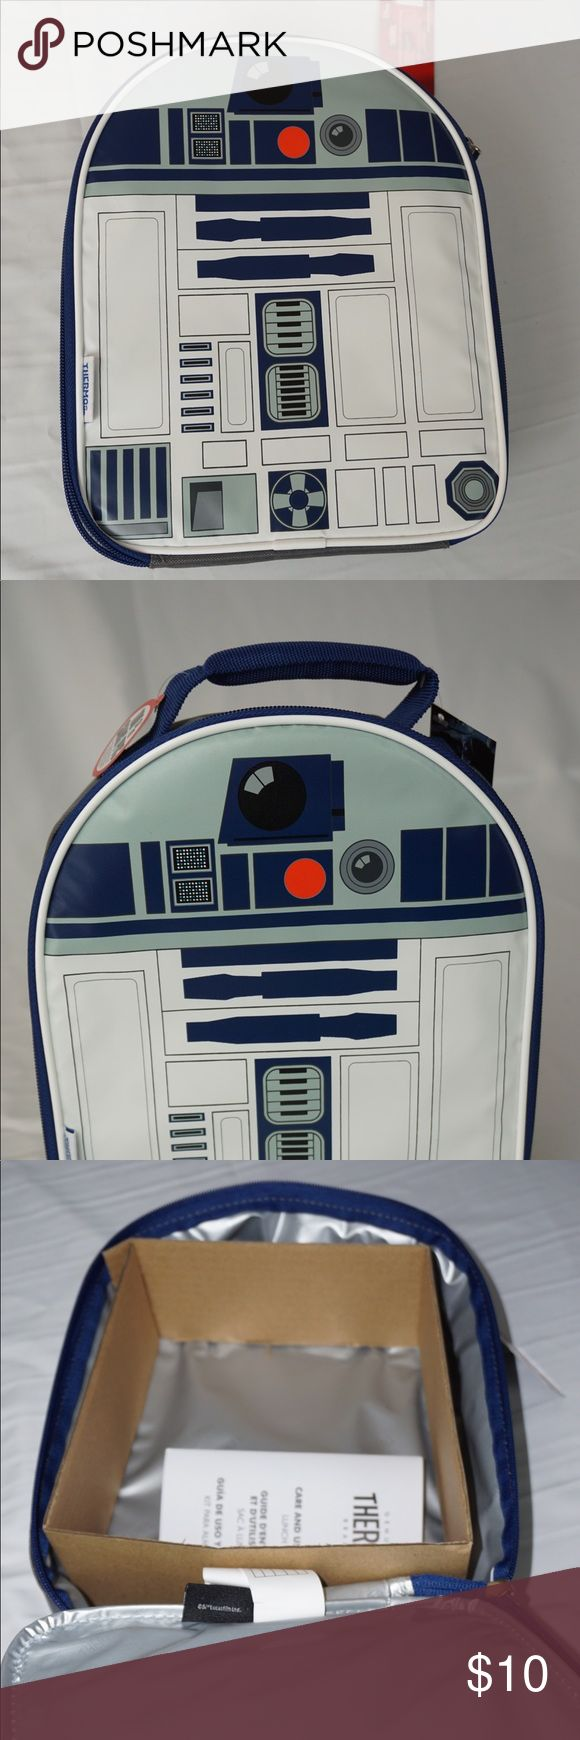 STARWARS R2D2 Lunch Box Brand new totally cute! Other